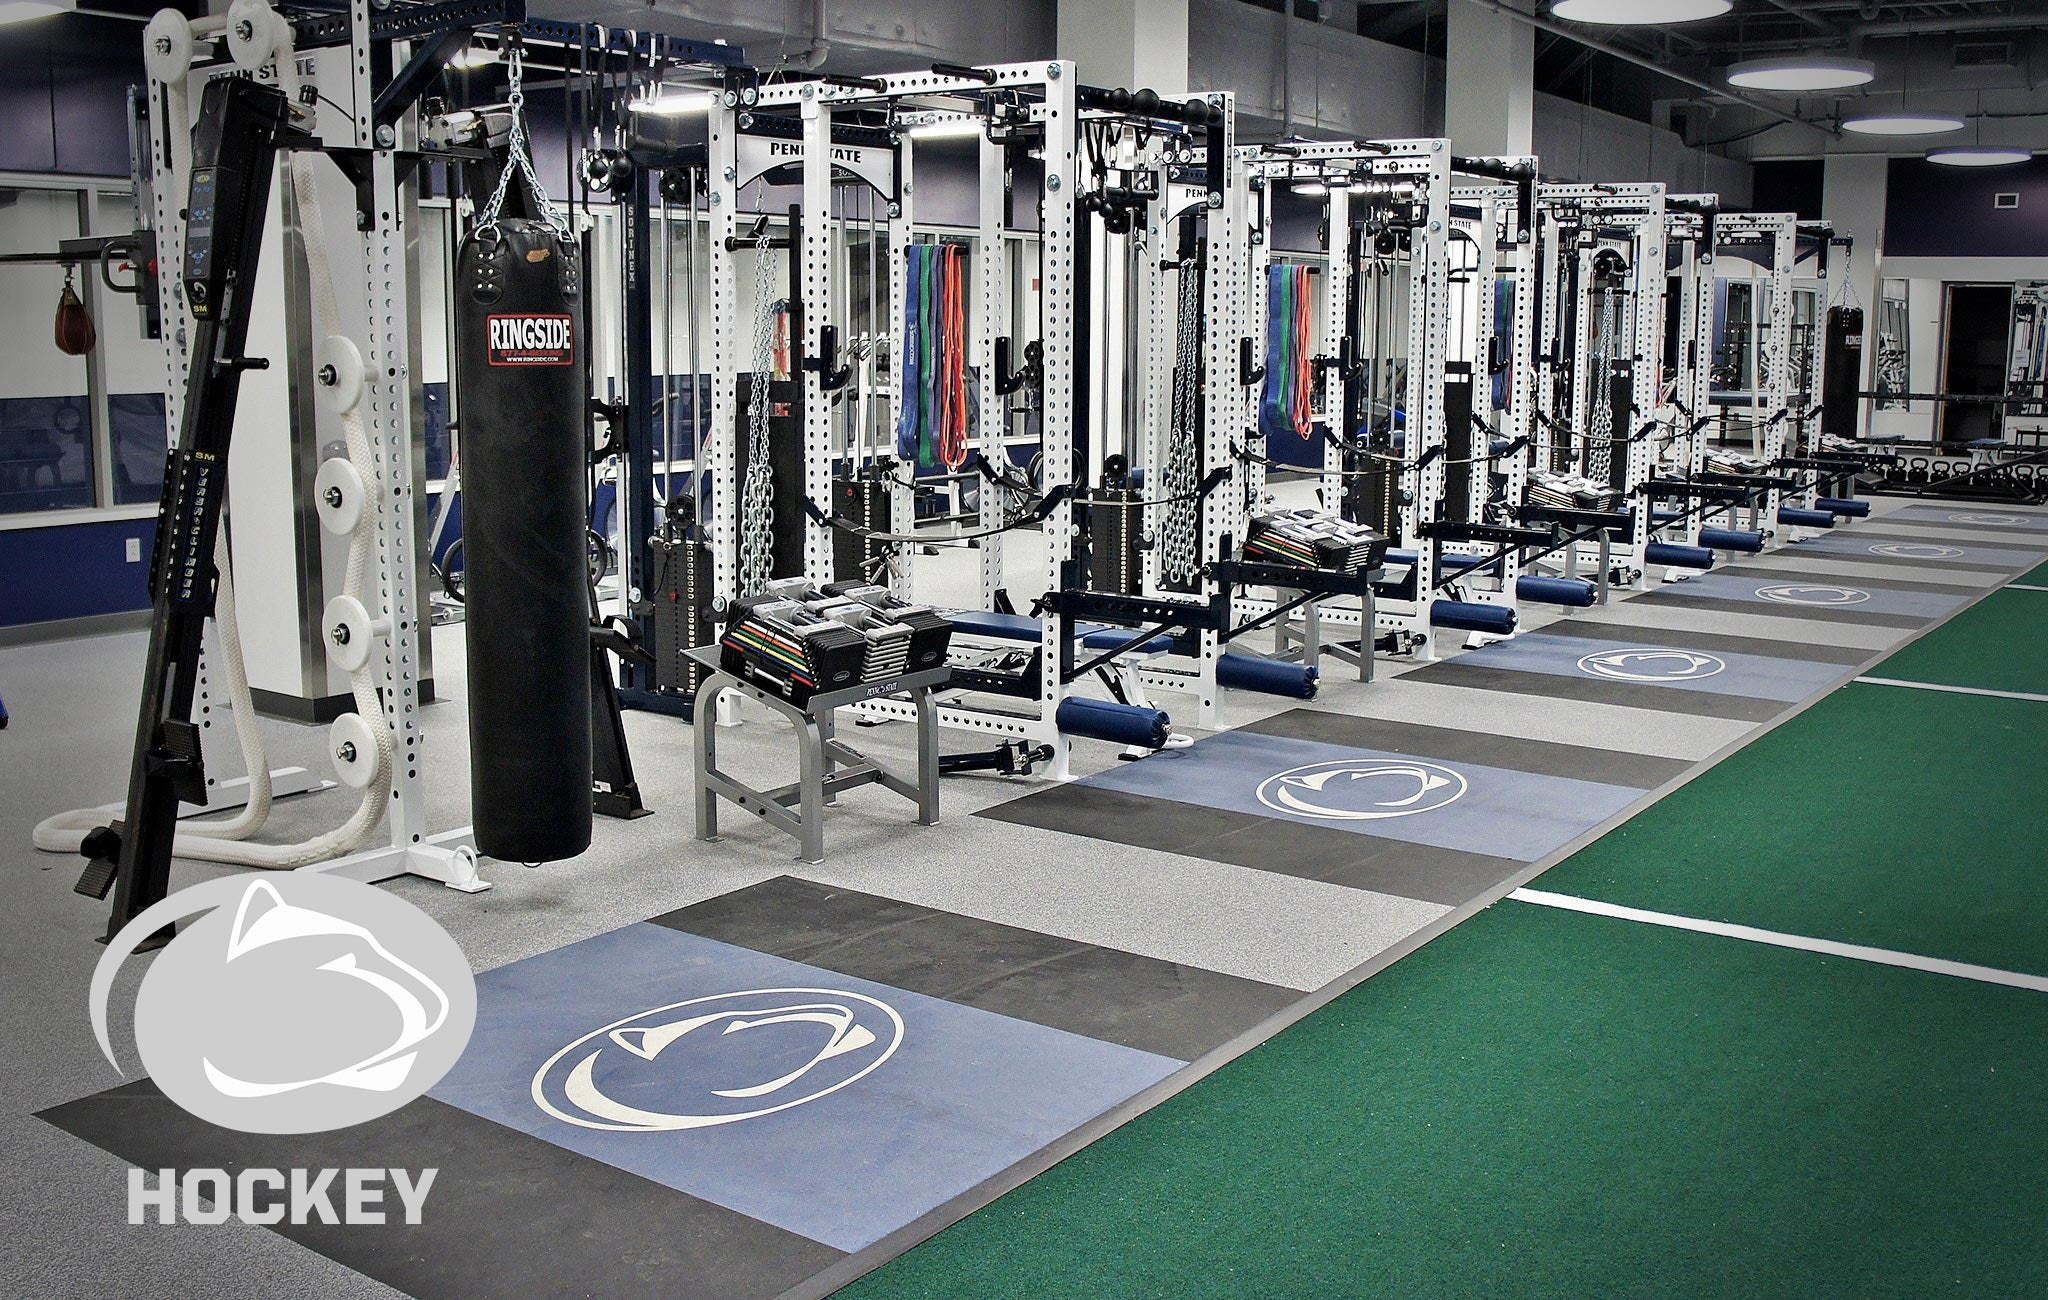 Penn State hockey Sorinex strength and conditioning facility